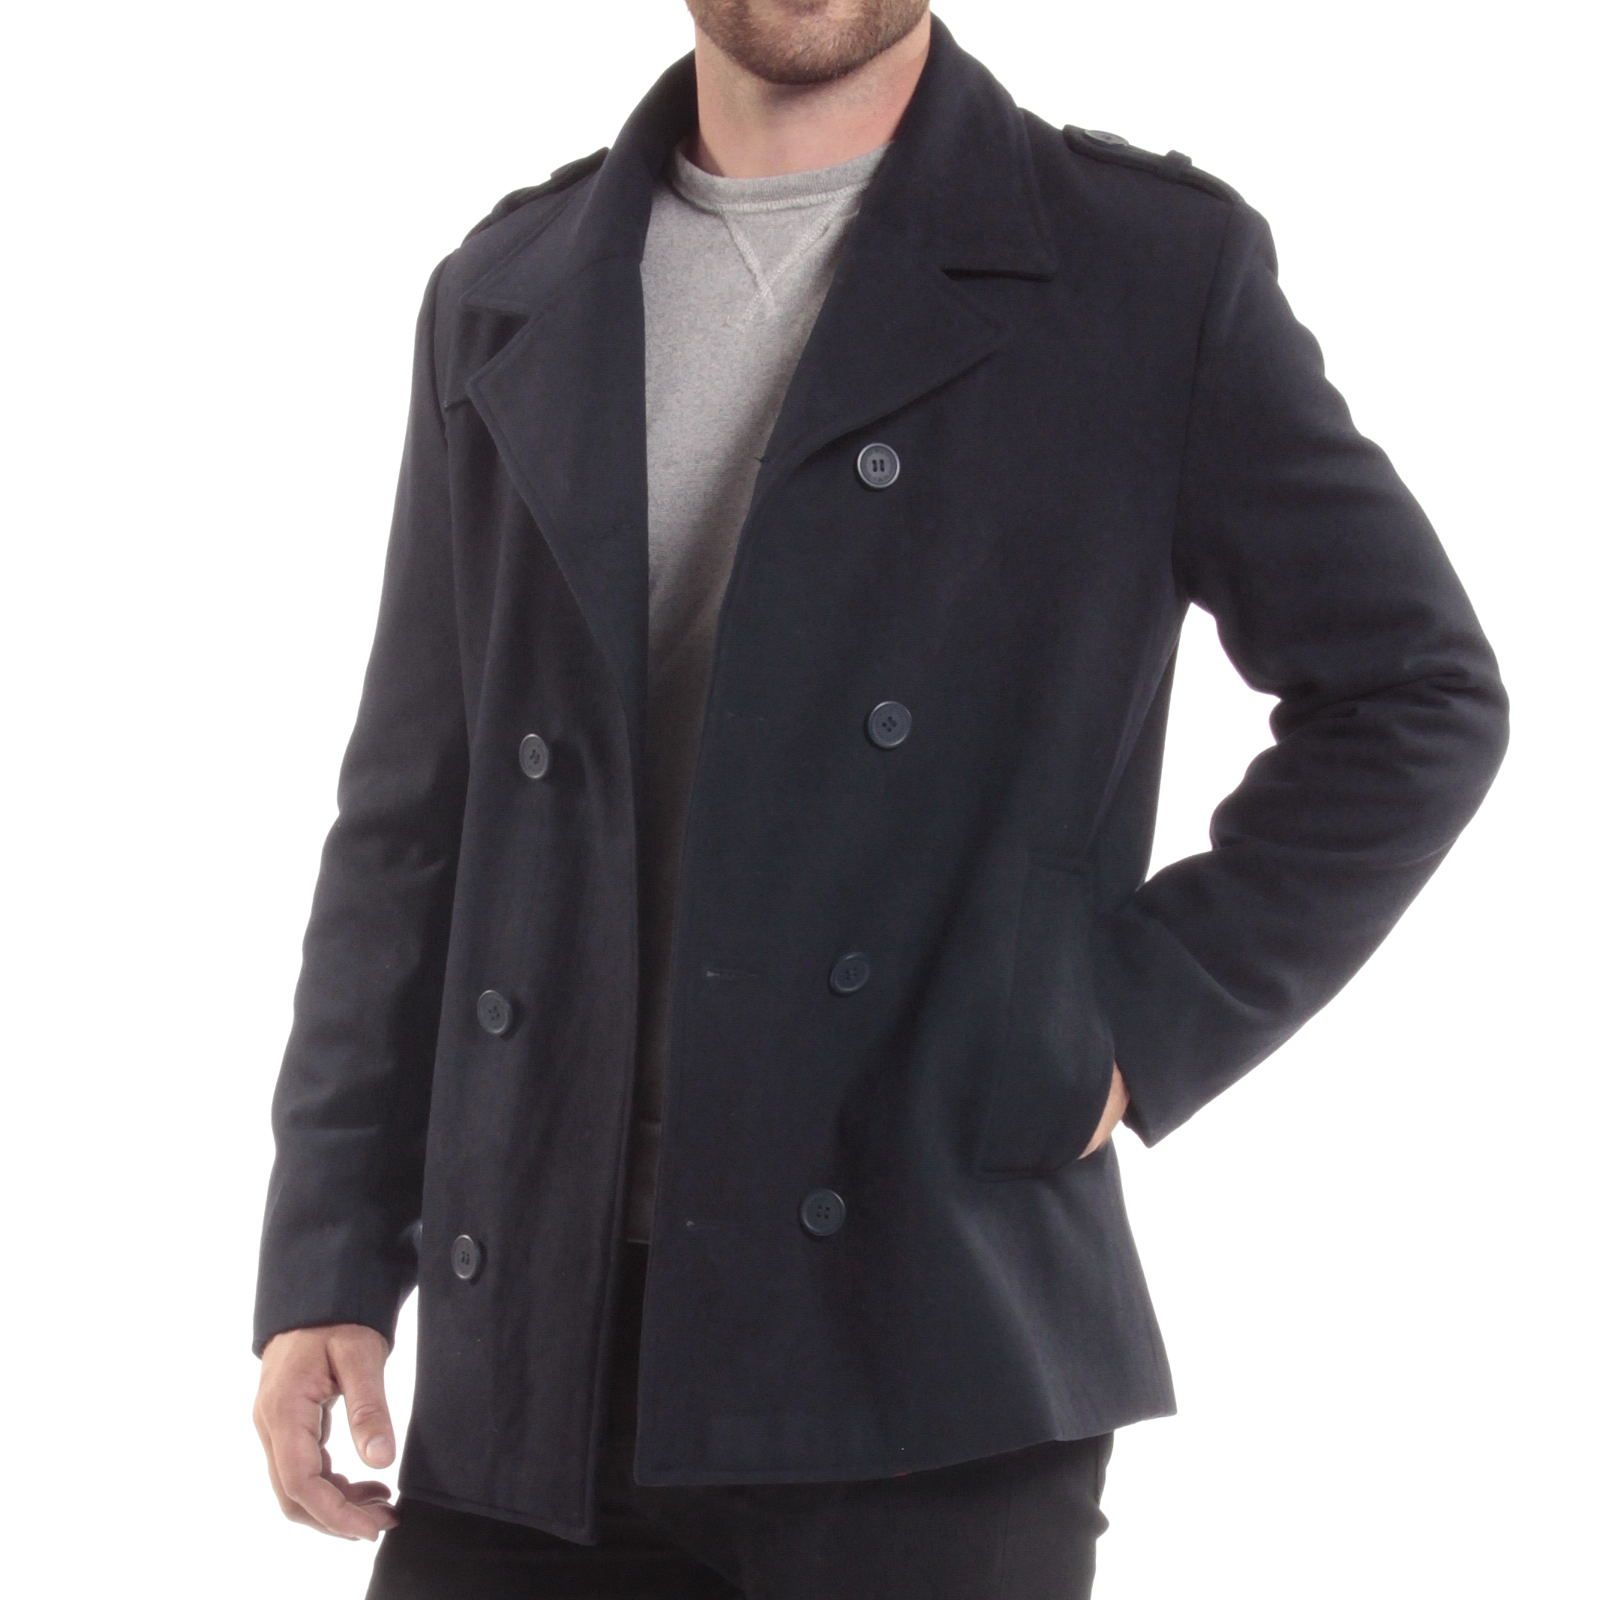 e9b16f6319 Alpine Swiss Jake Mens Pea Coat Wool Blend Double Breasted Dress Jacket  Peacoat Men's Clothing